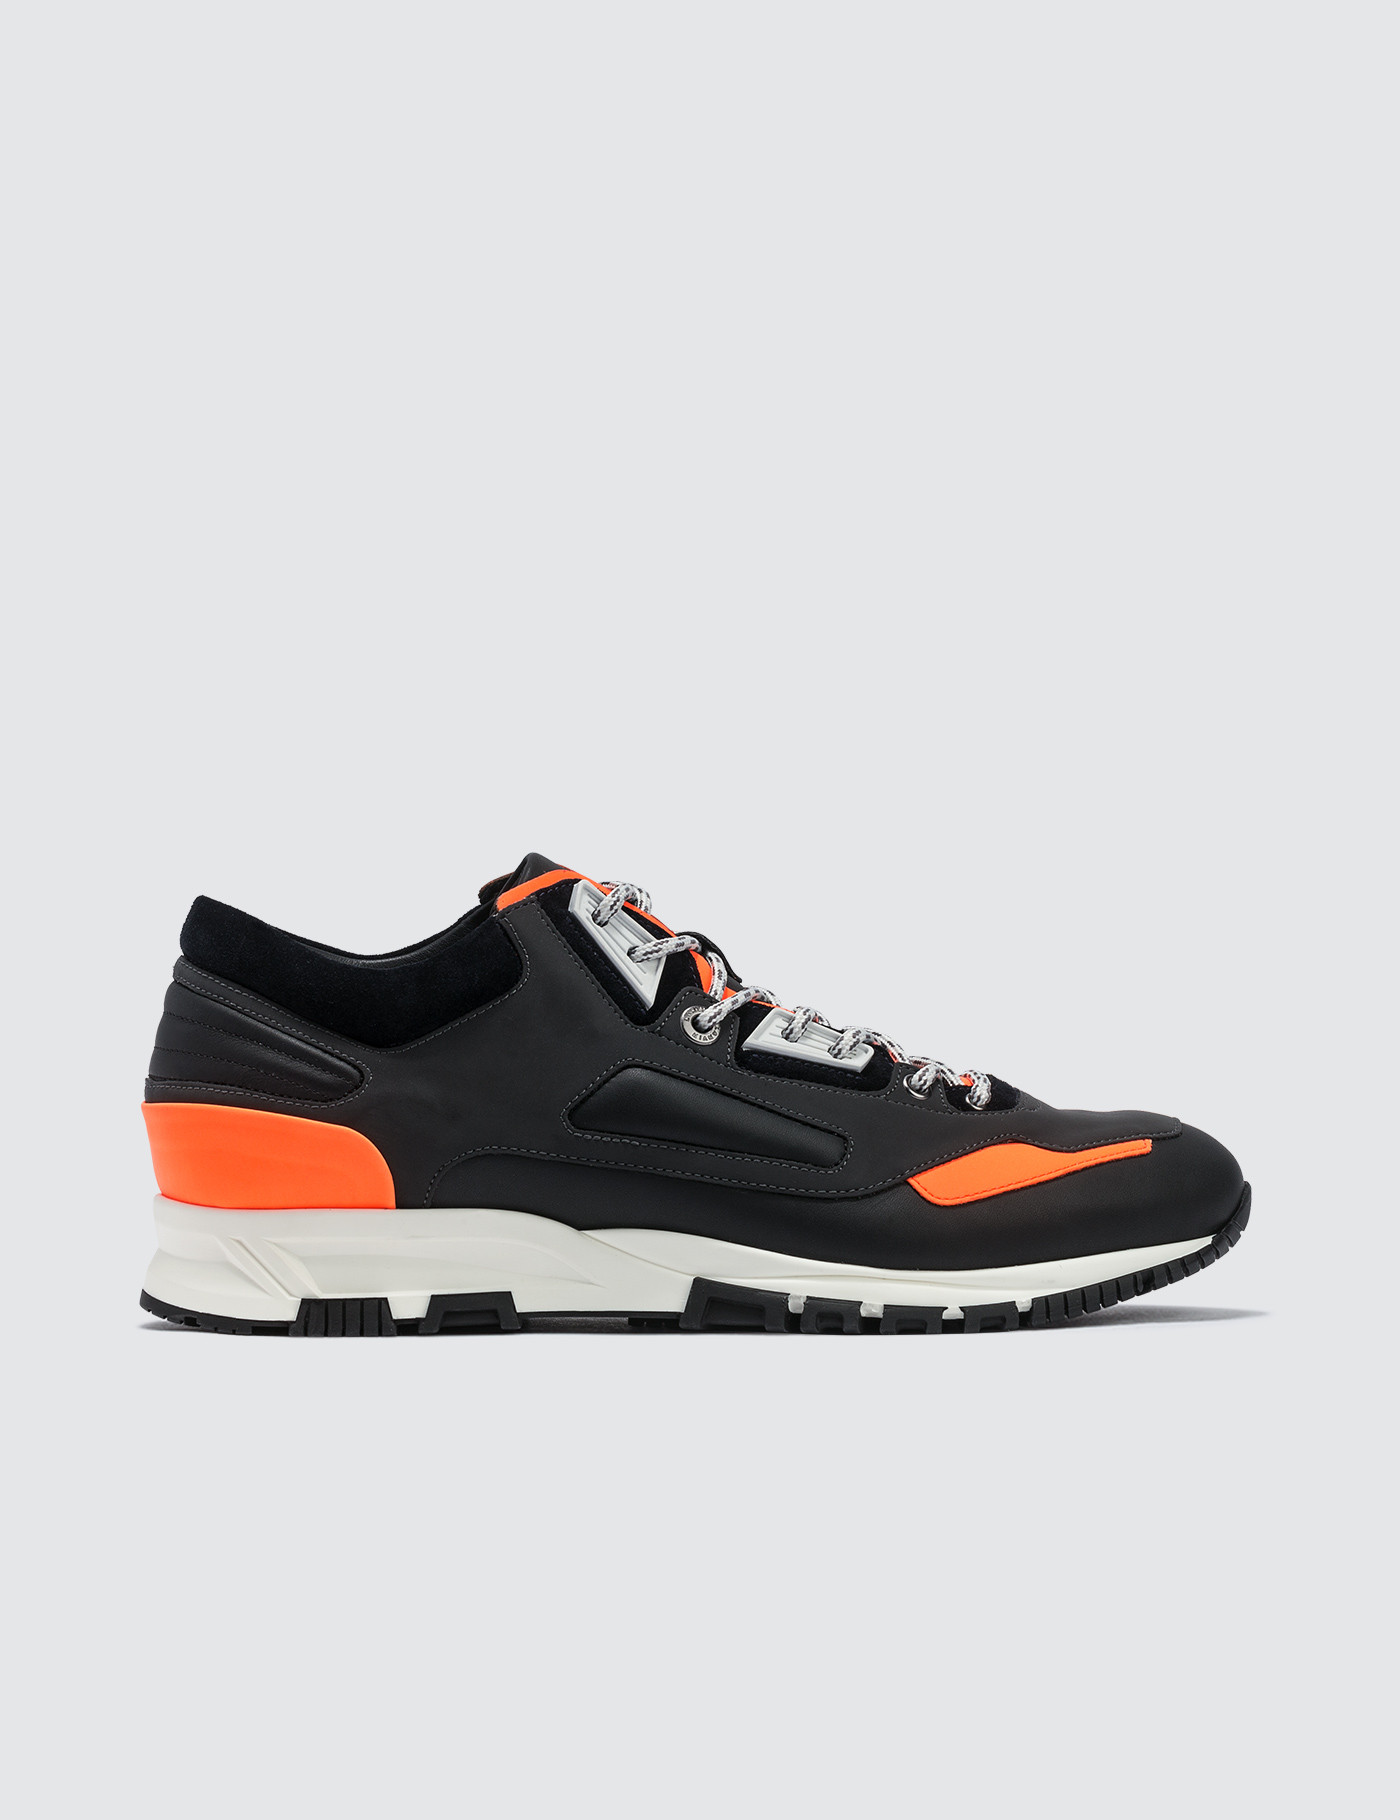 Running Reflective Fabric Nappa/suede